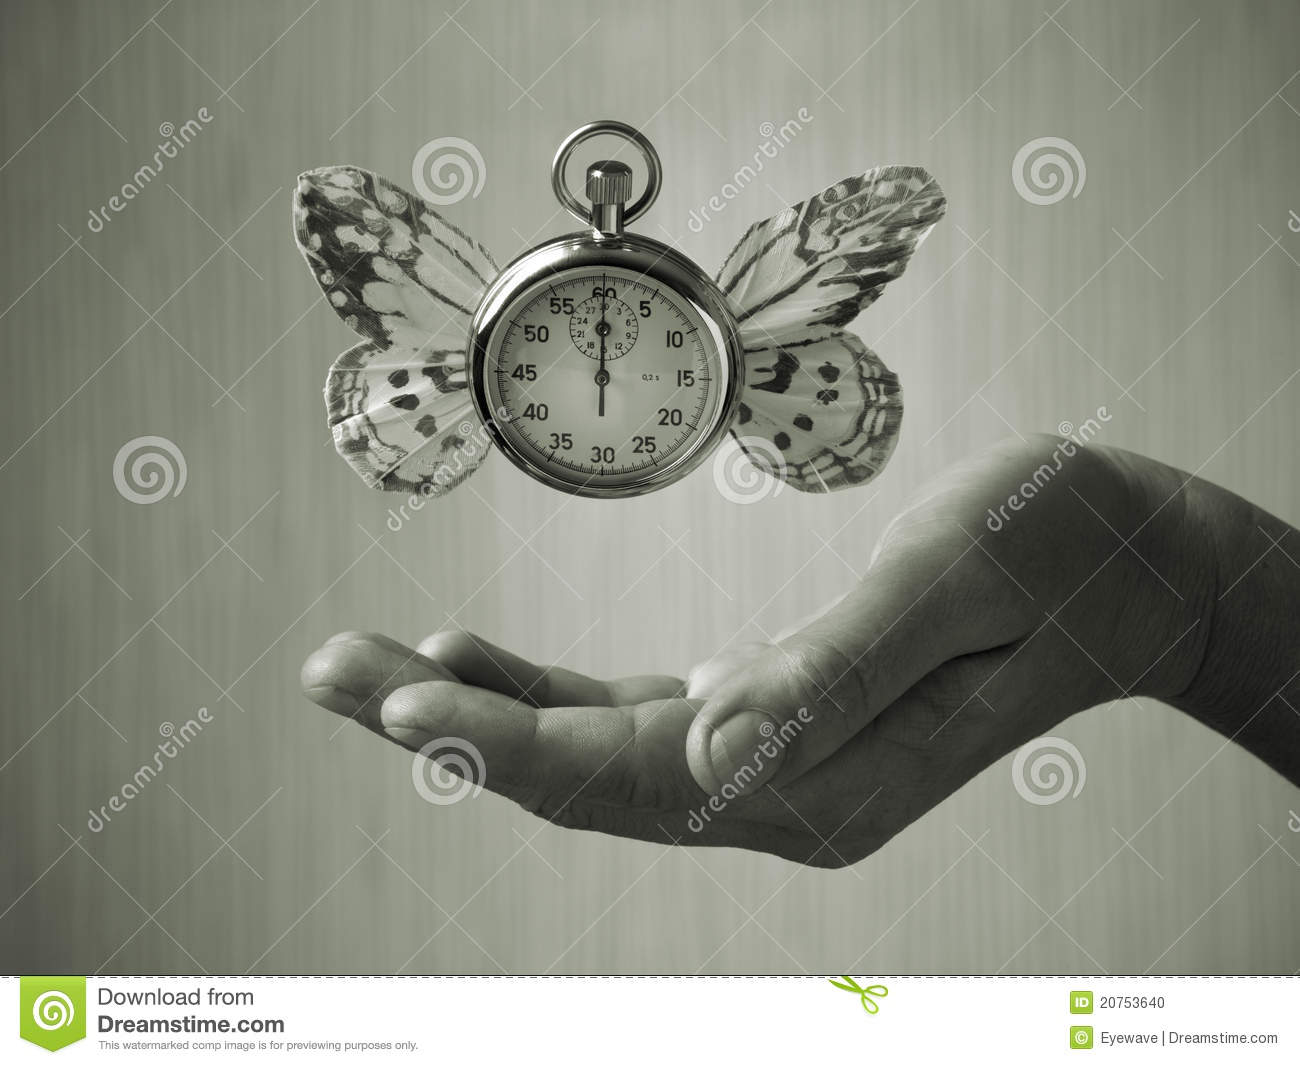 Weight Of Time >> The Weight Of Time Stock Photo Image Of Wings Floating 20753640